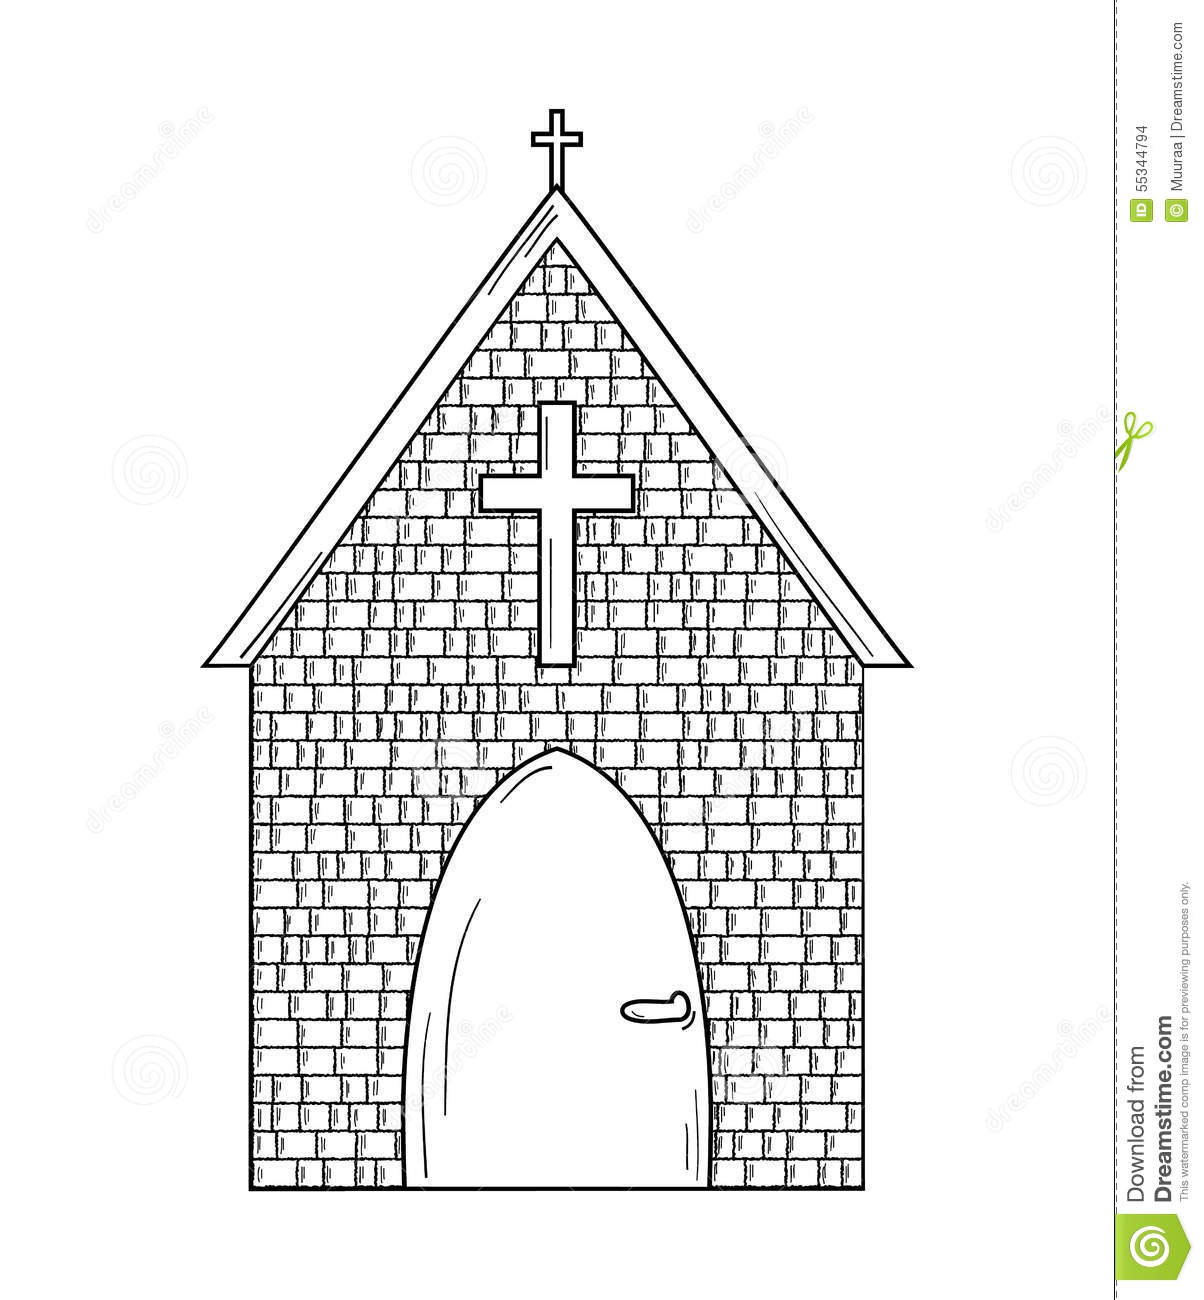 Illustration Stock Mouche Domestique De Dessin De Main Image53111023 also 5909766 moreover Stock Photography Land Sea Turtle Vector Illustration Image1519642 furthermore Cupped together with Stock Illustration Sketch Church White Background Isolated Image55344794. on art house plans